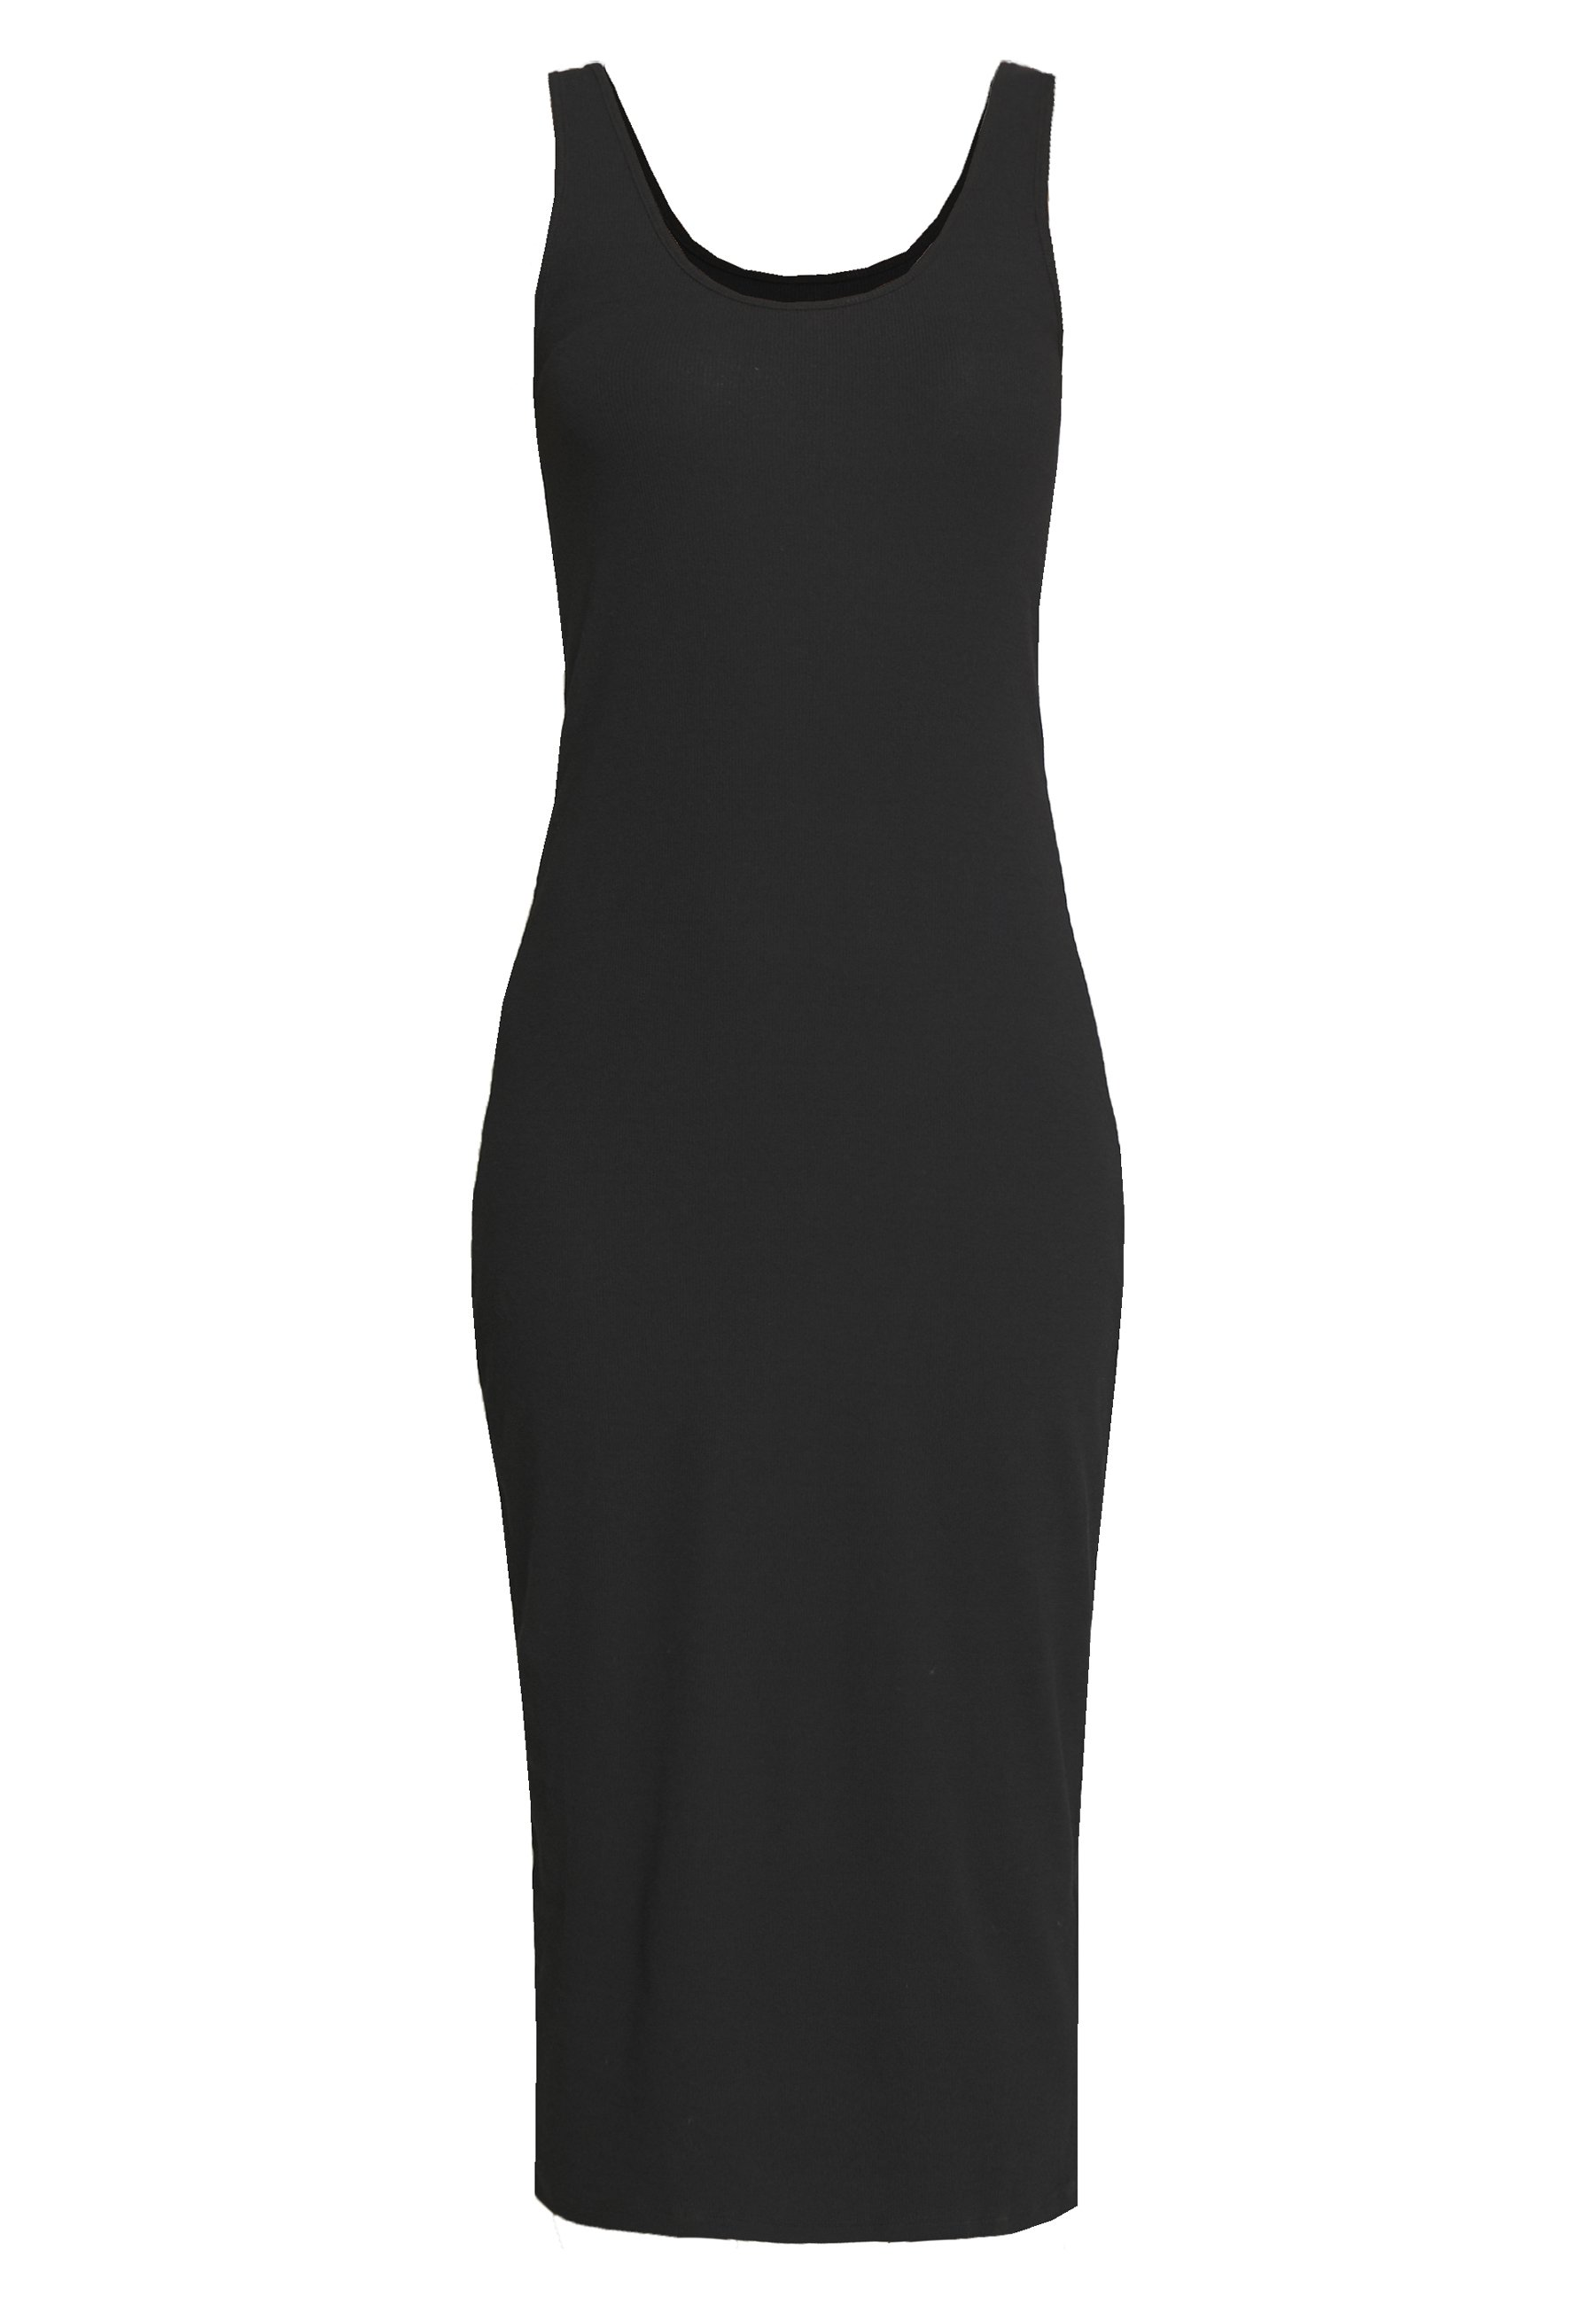 Samsøe Samsøe SUELLA DRESS - Sukienka etui - black